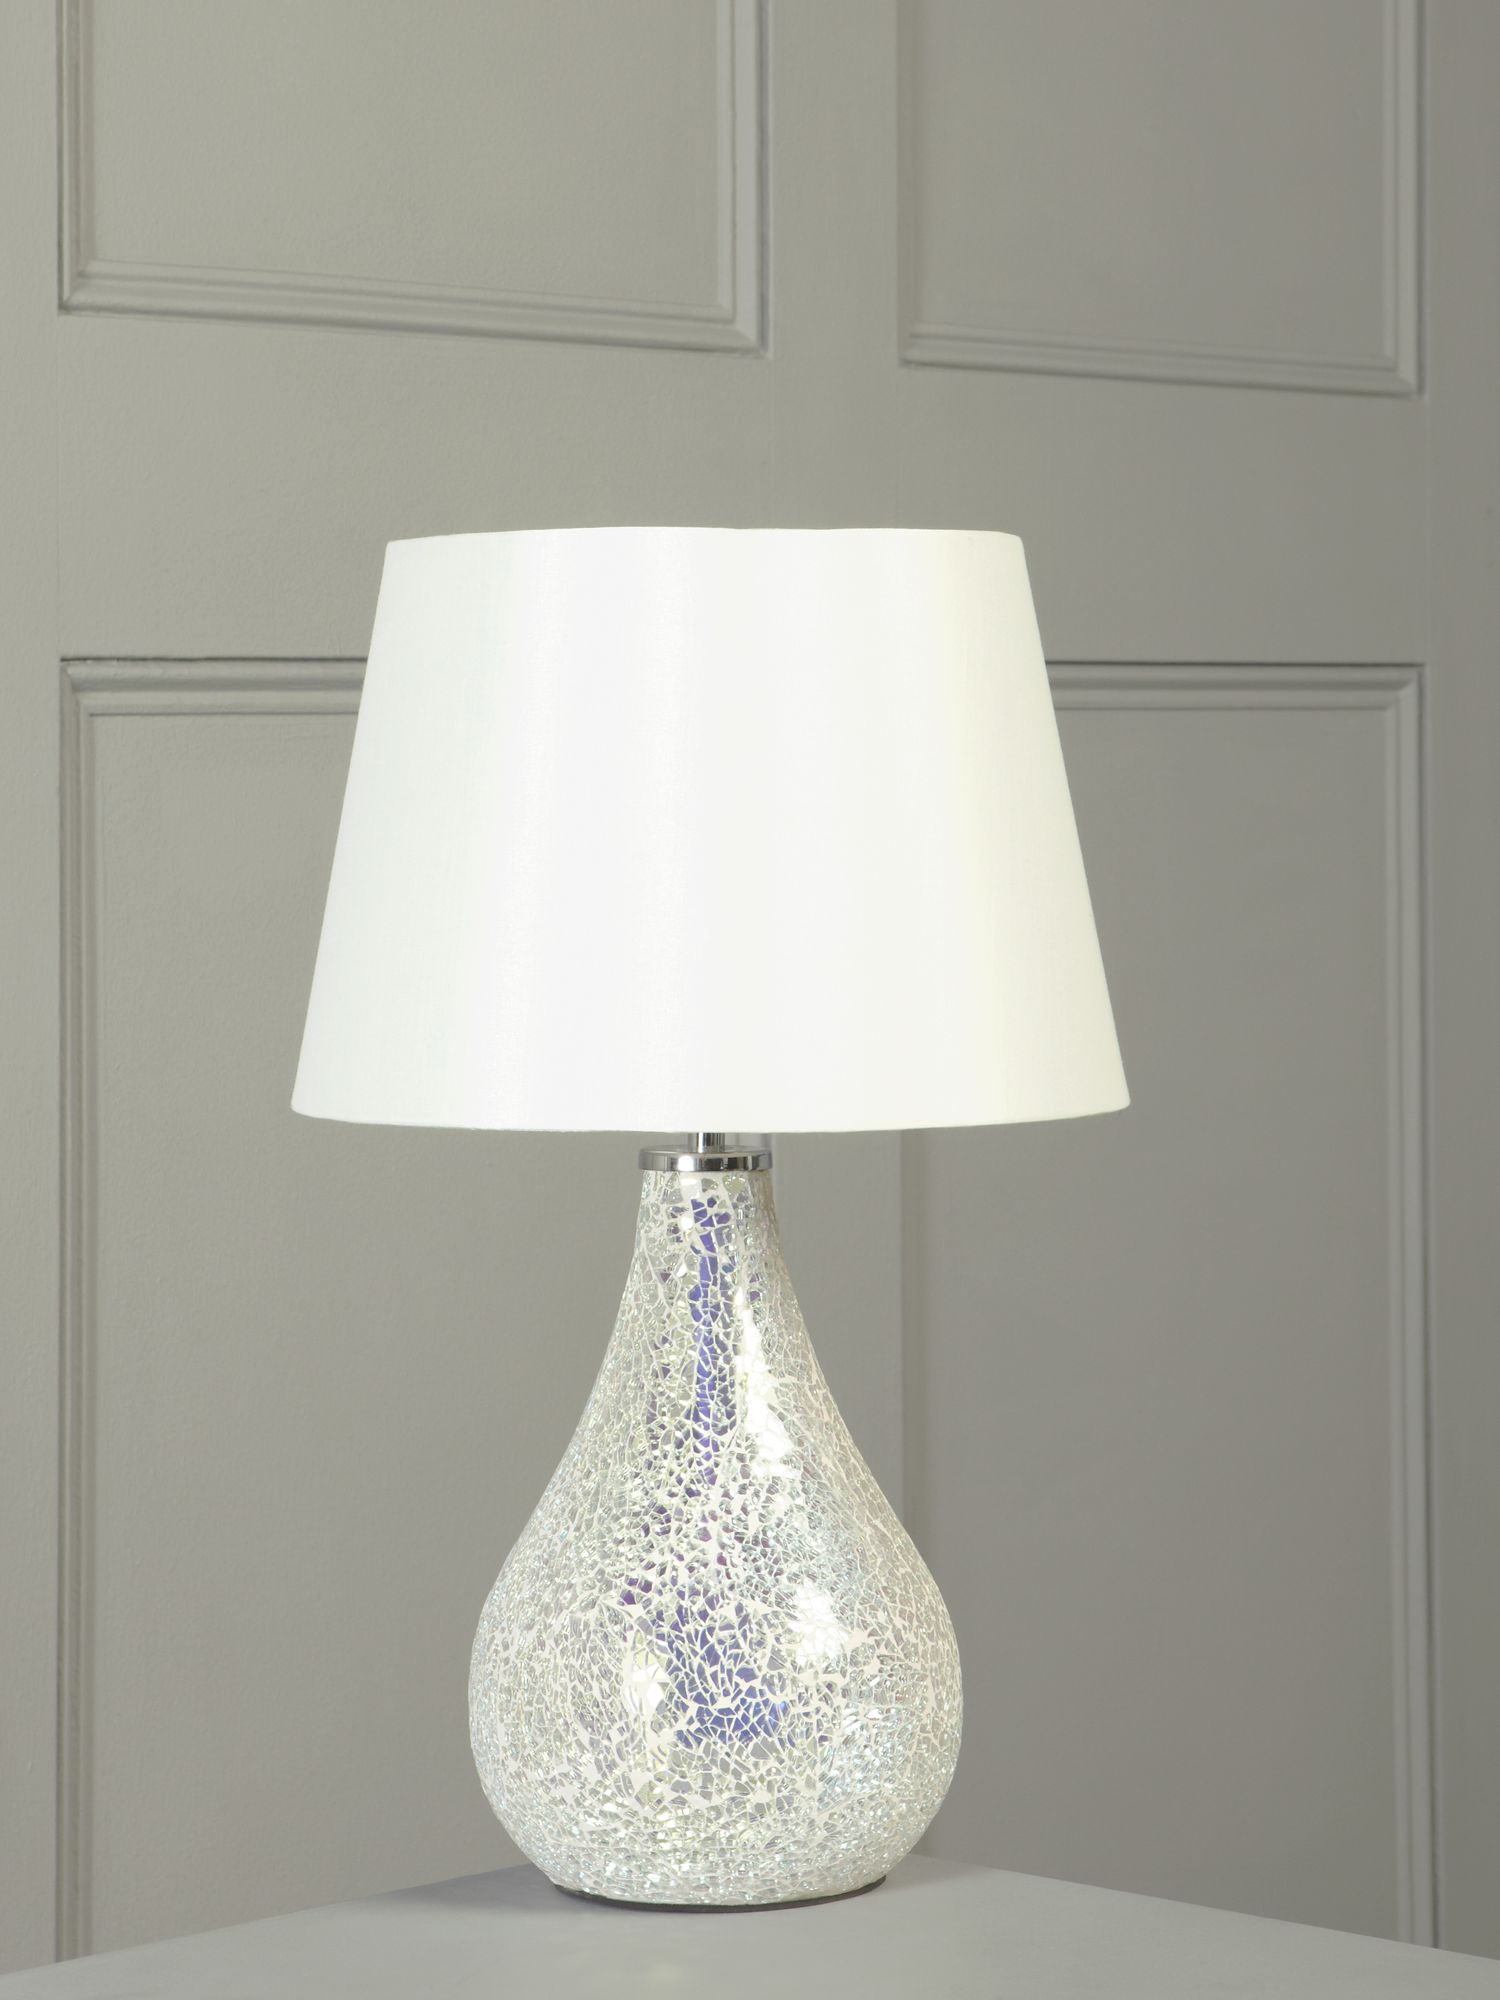 Zara irridescent table lamp